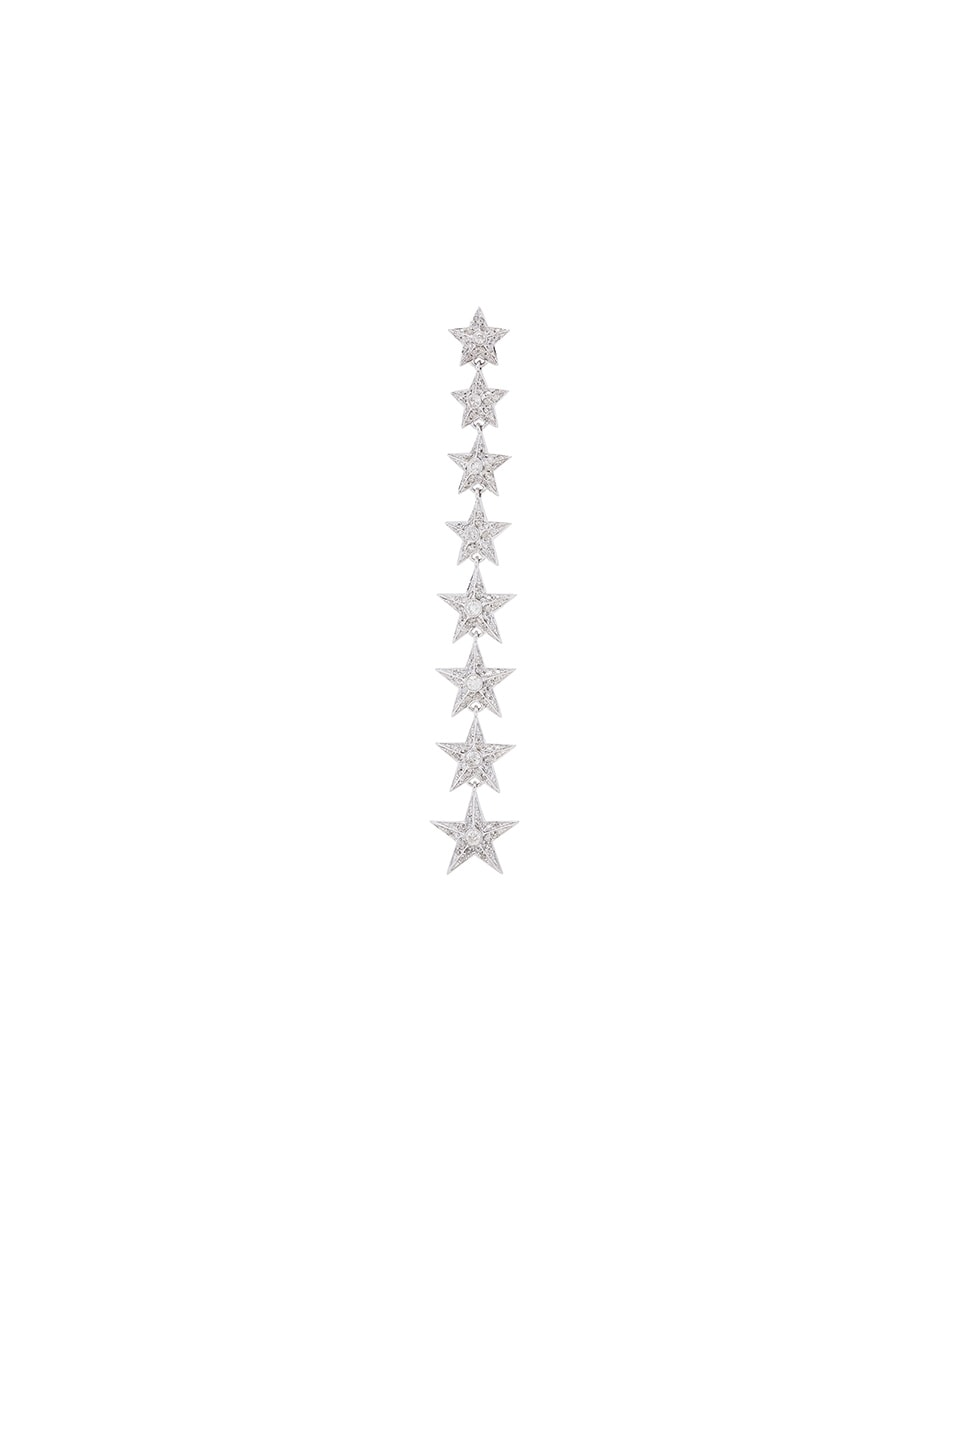 Image 1 of Elise Dray Falling Star Single Earring in White Gold & Grey Diamonds